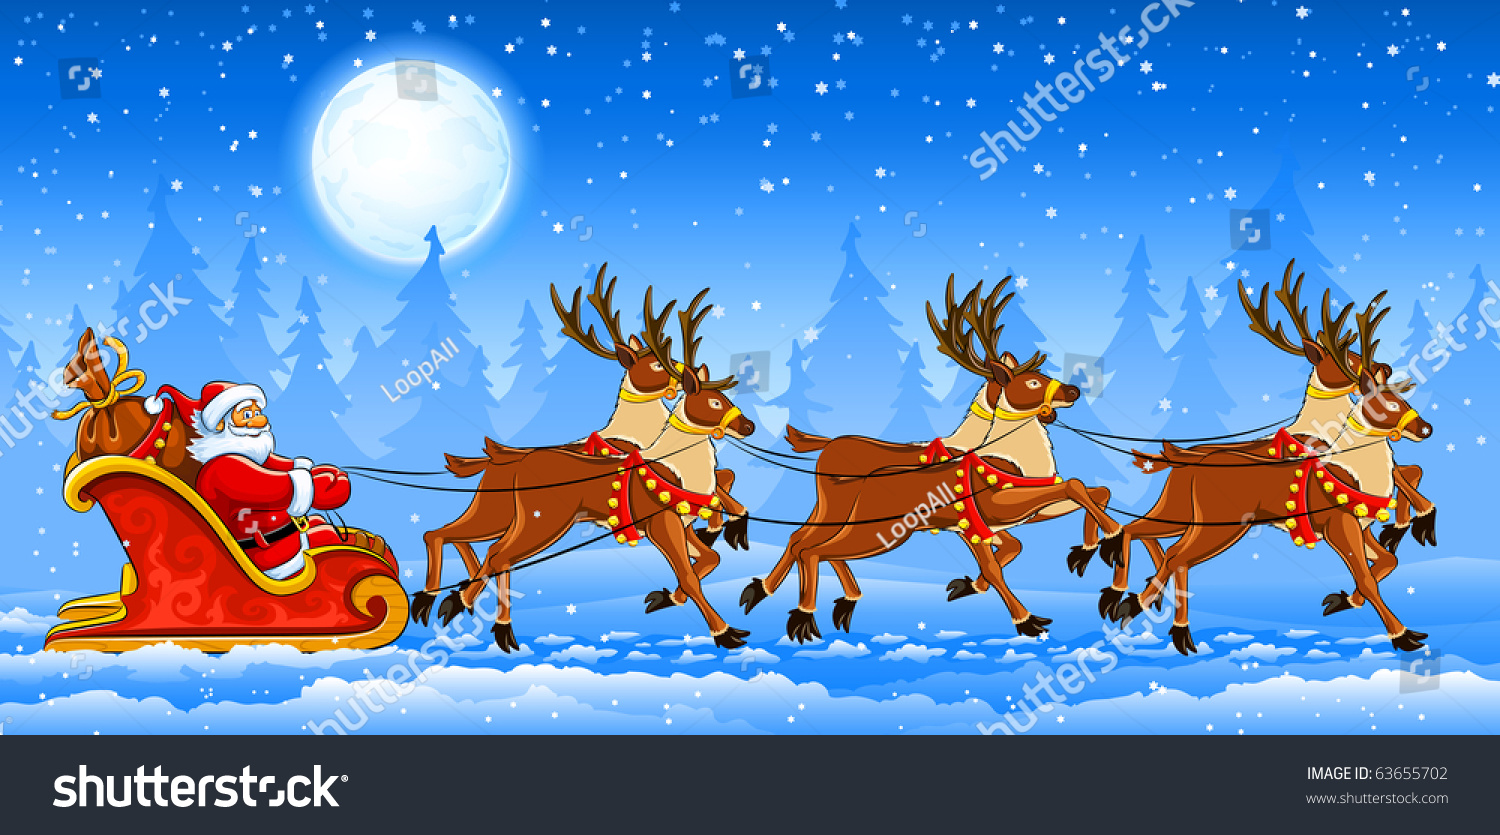 christmas santa claus riding on sleigh with reindeers by snow vector illustration - Santa With Reindeer